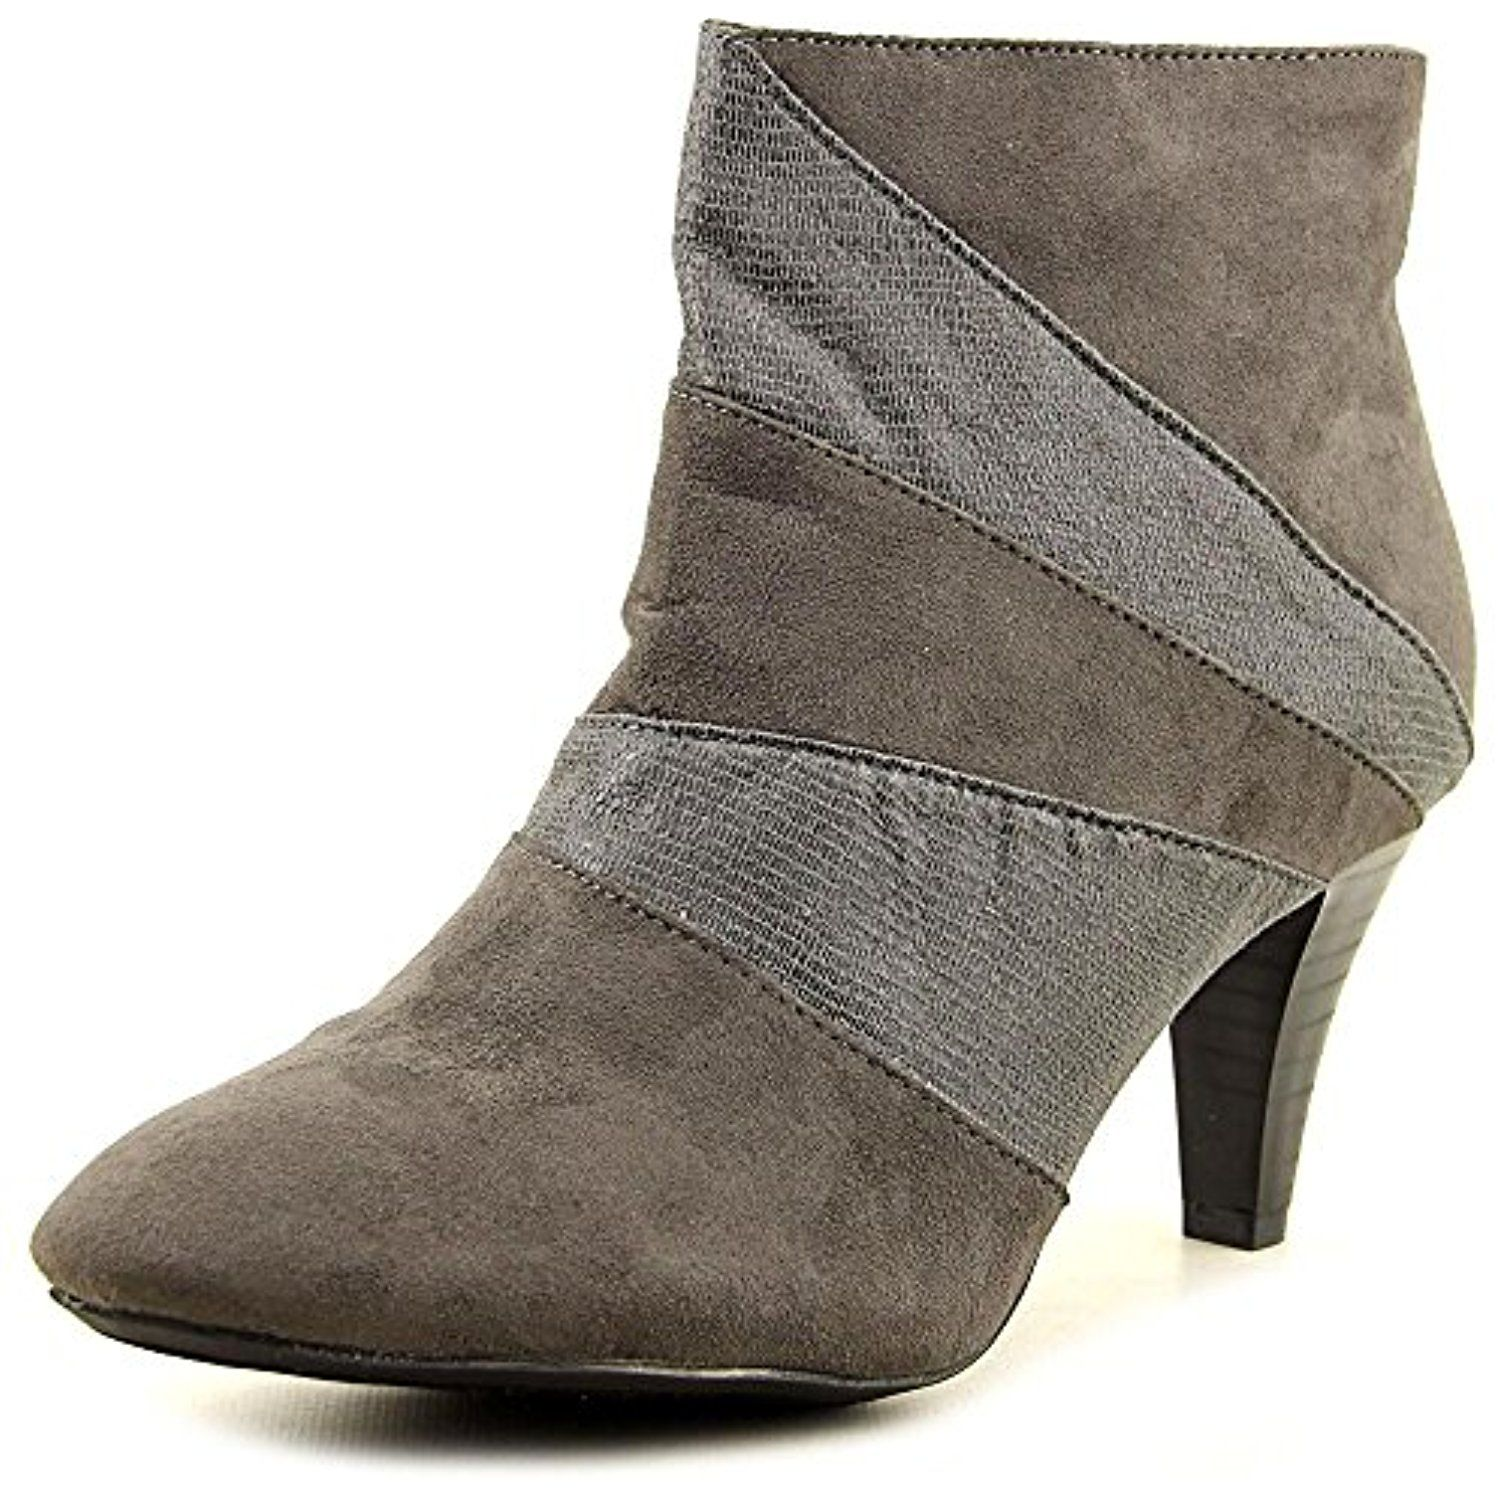 Milann Round Toe Synthetic Ankle Boot